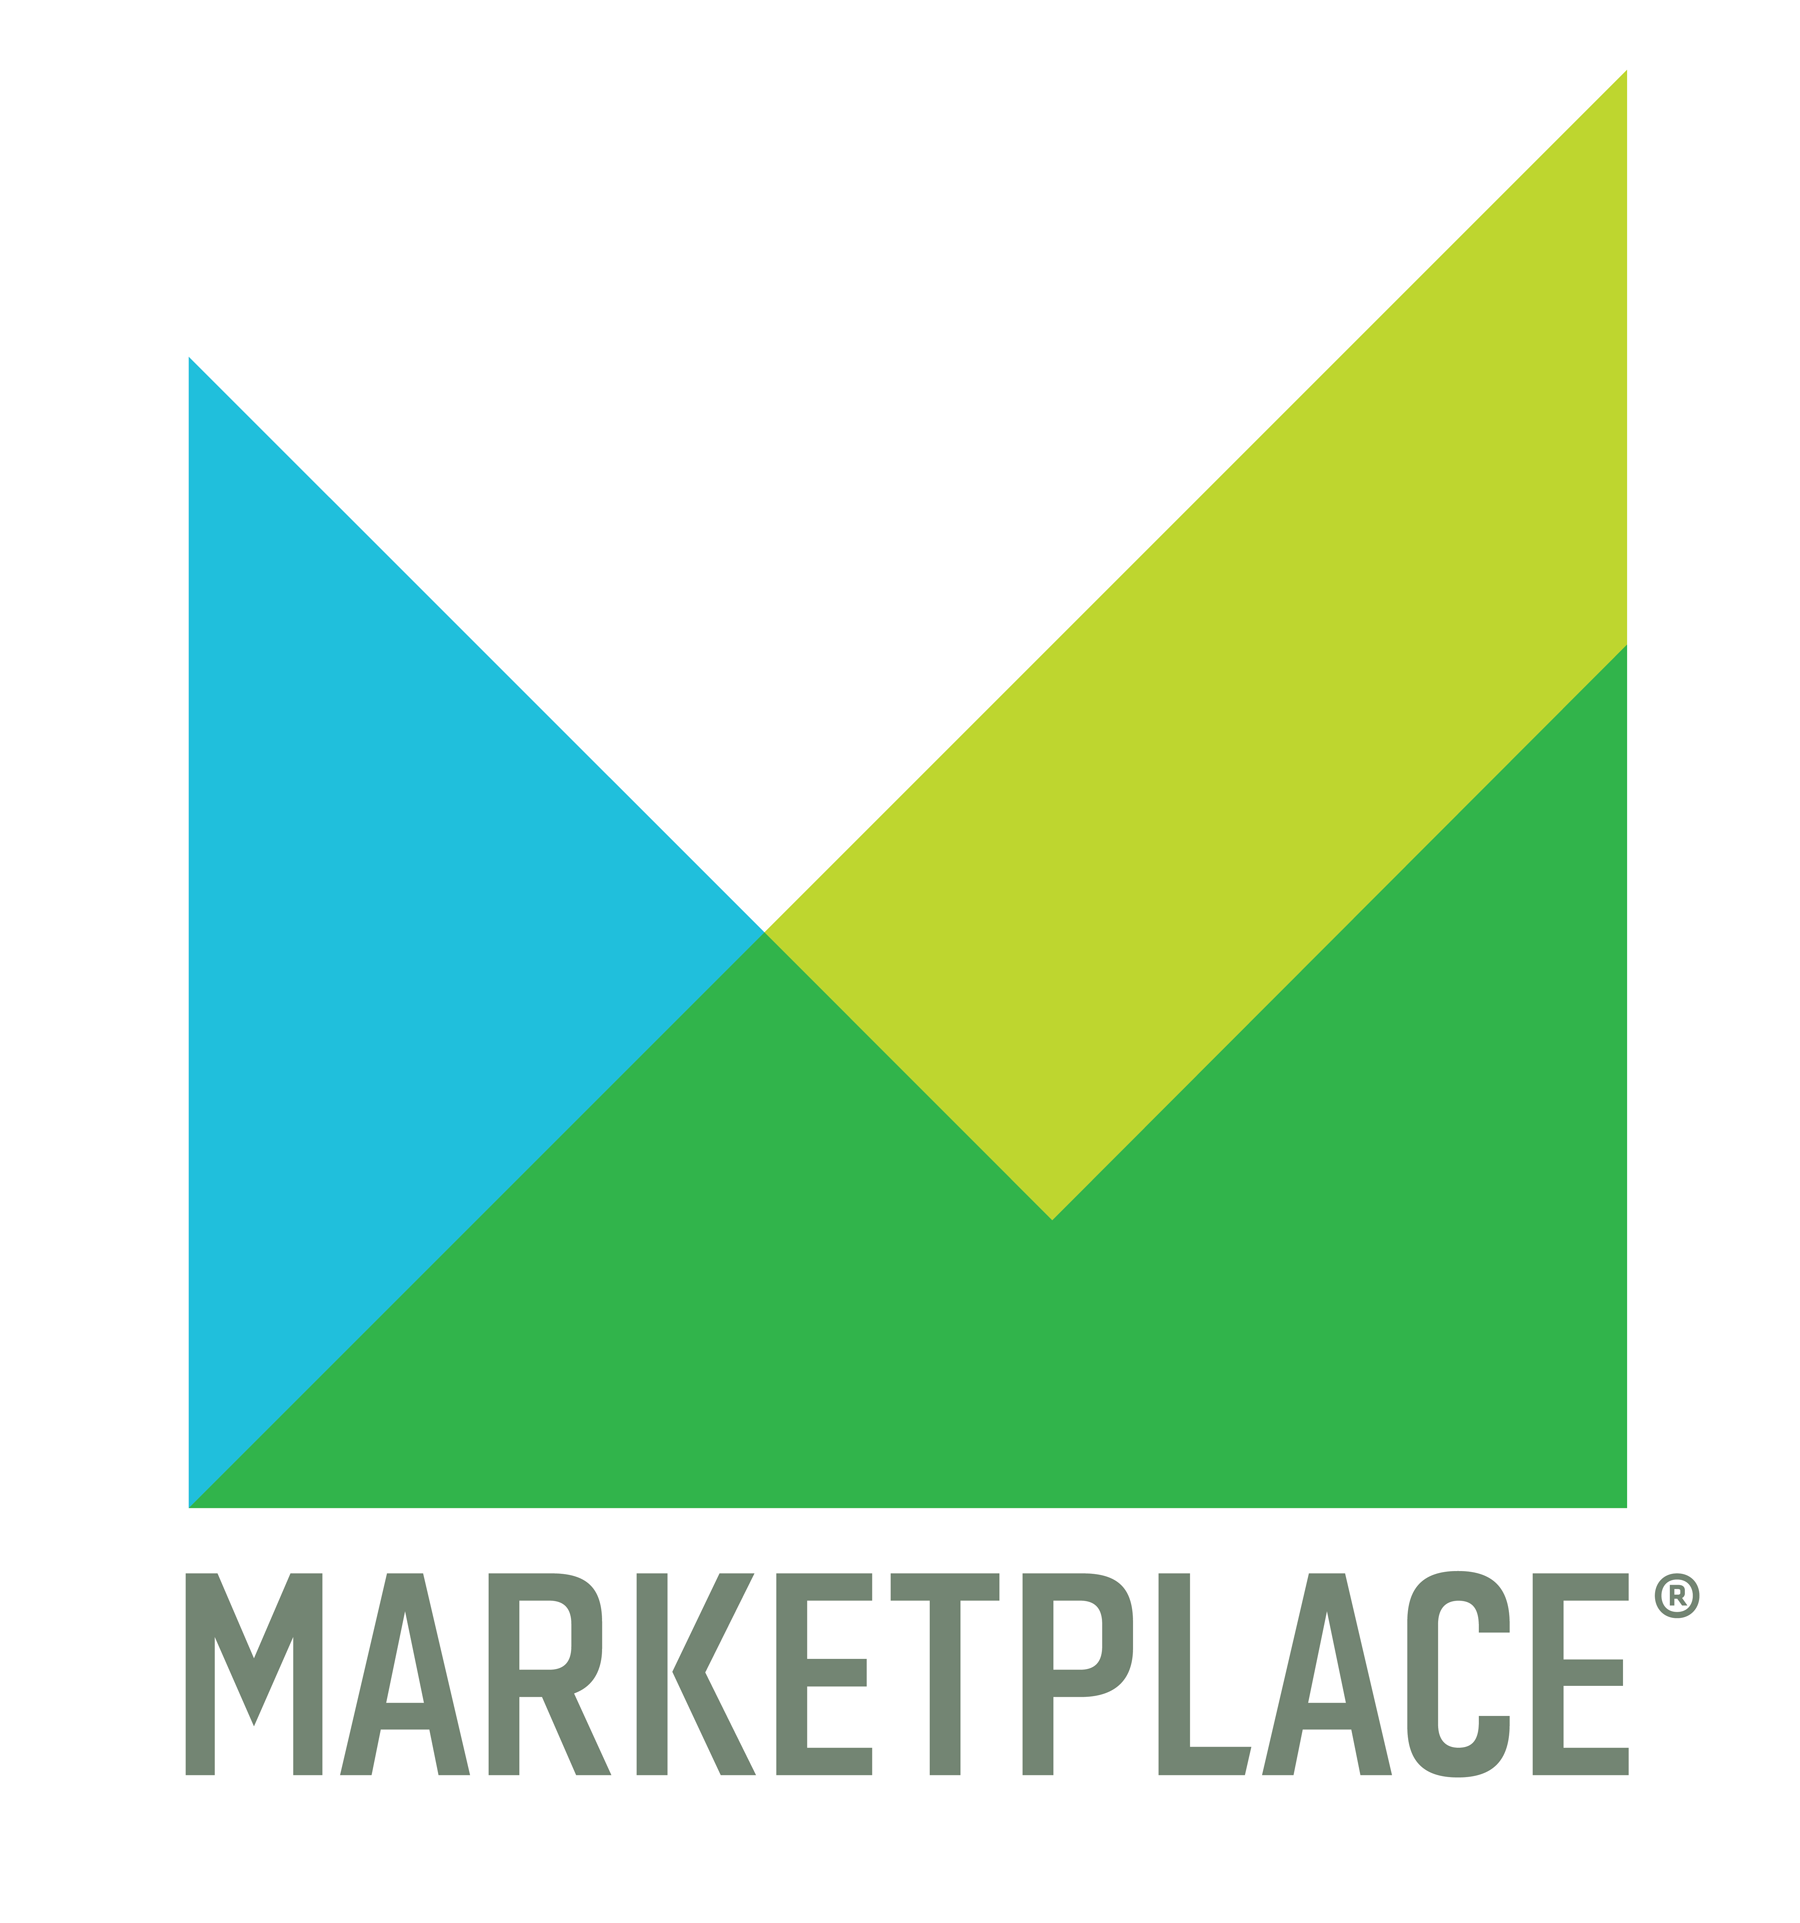 Marketplace_print.png